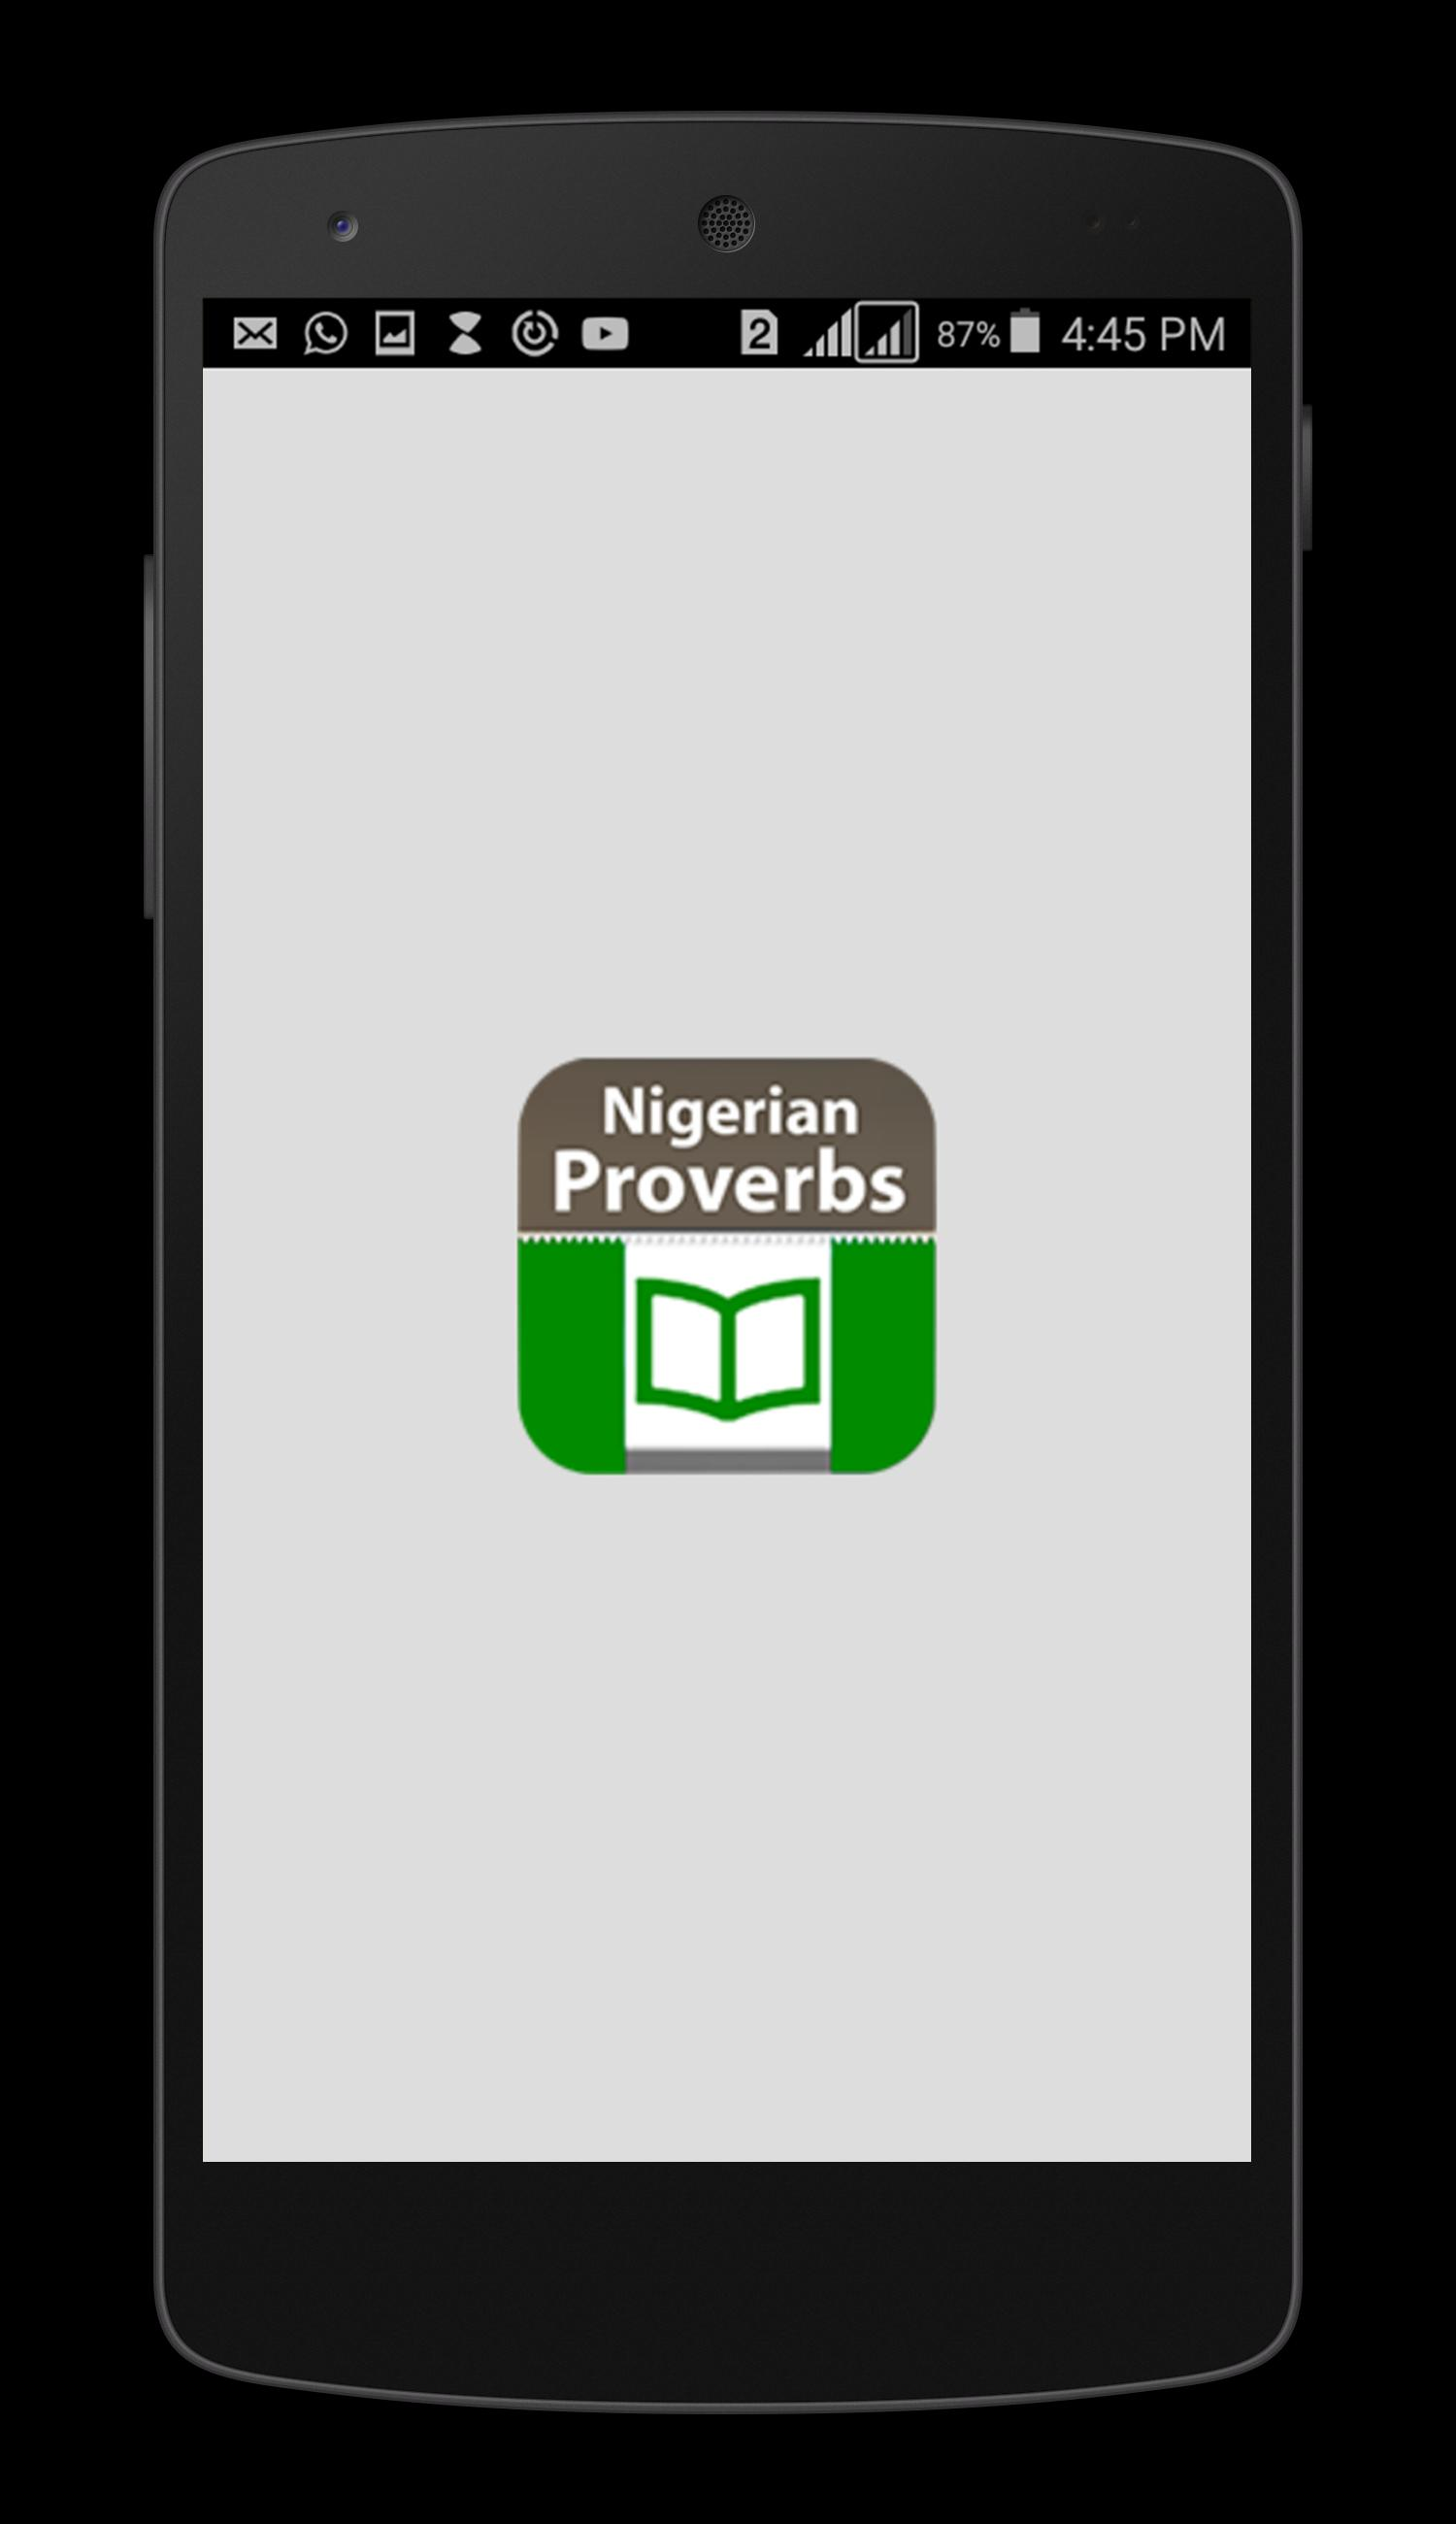 Nigerian Proverbs poster